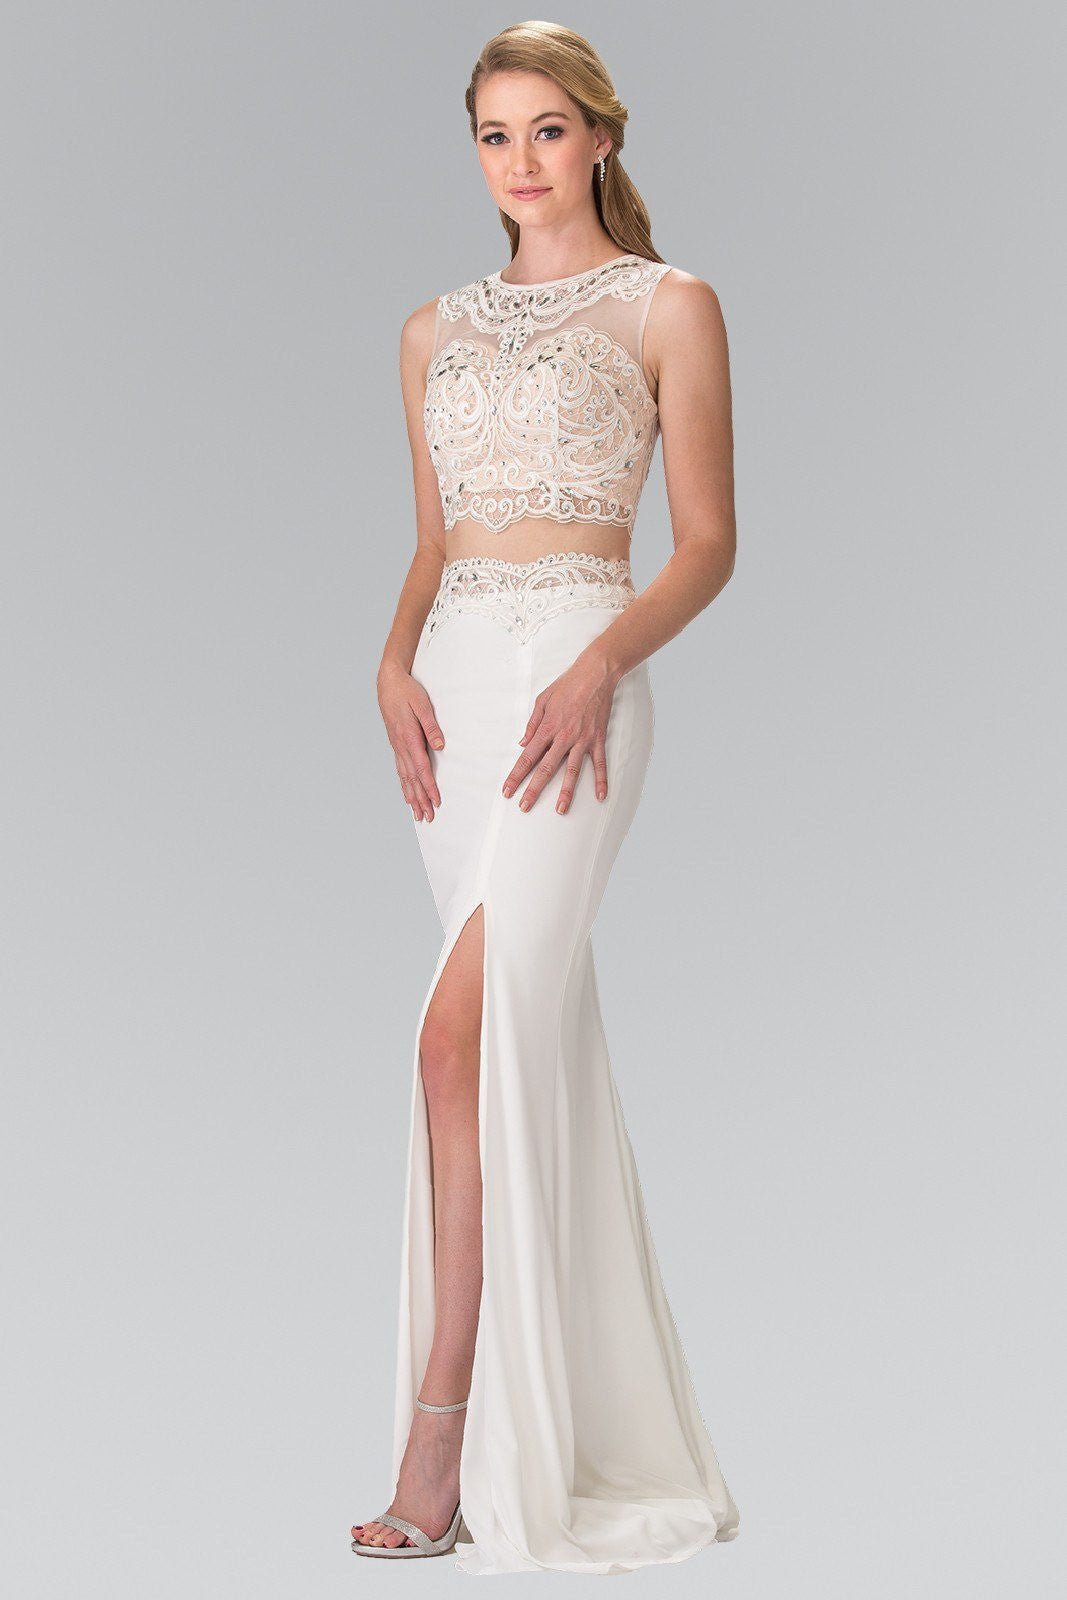 Prom Dress with High Slit